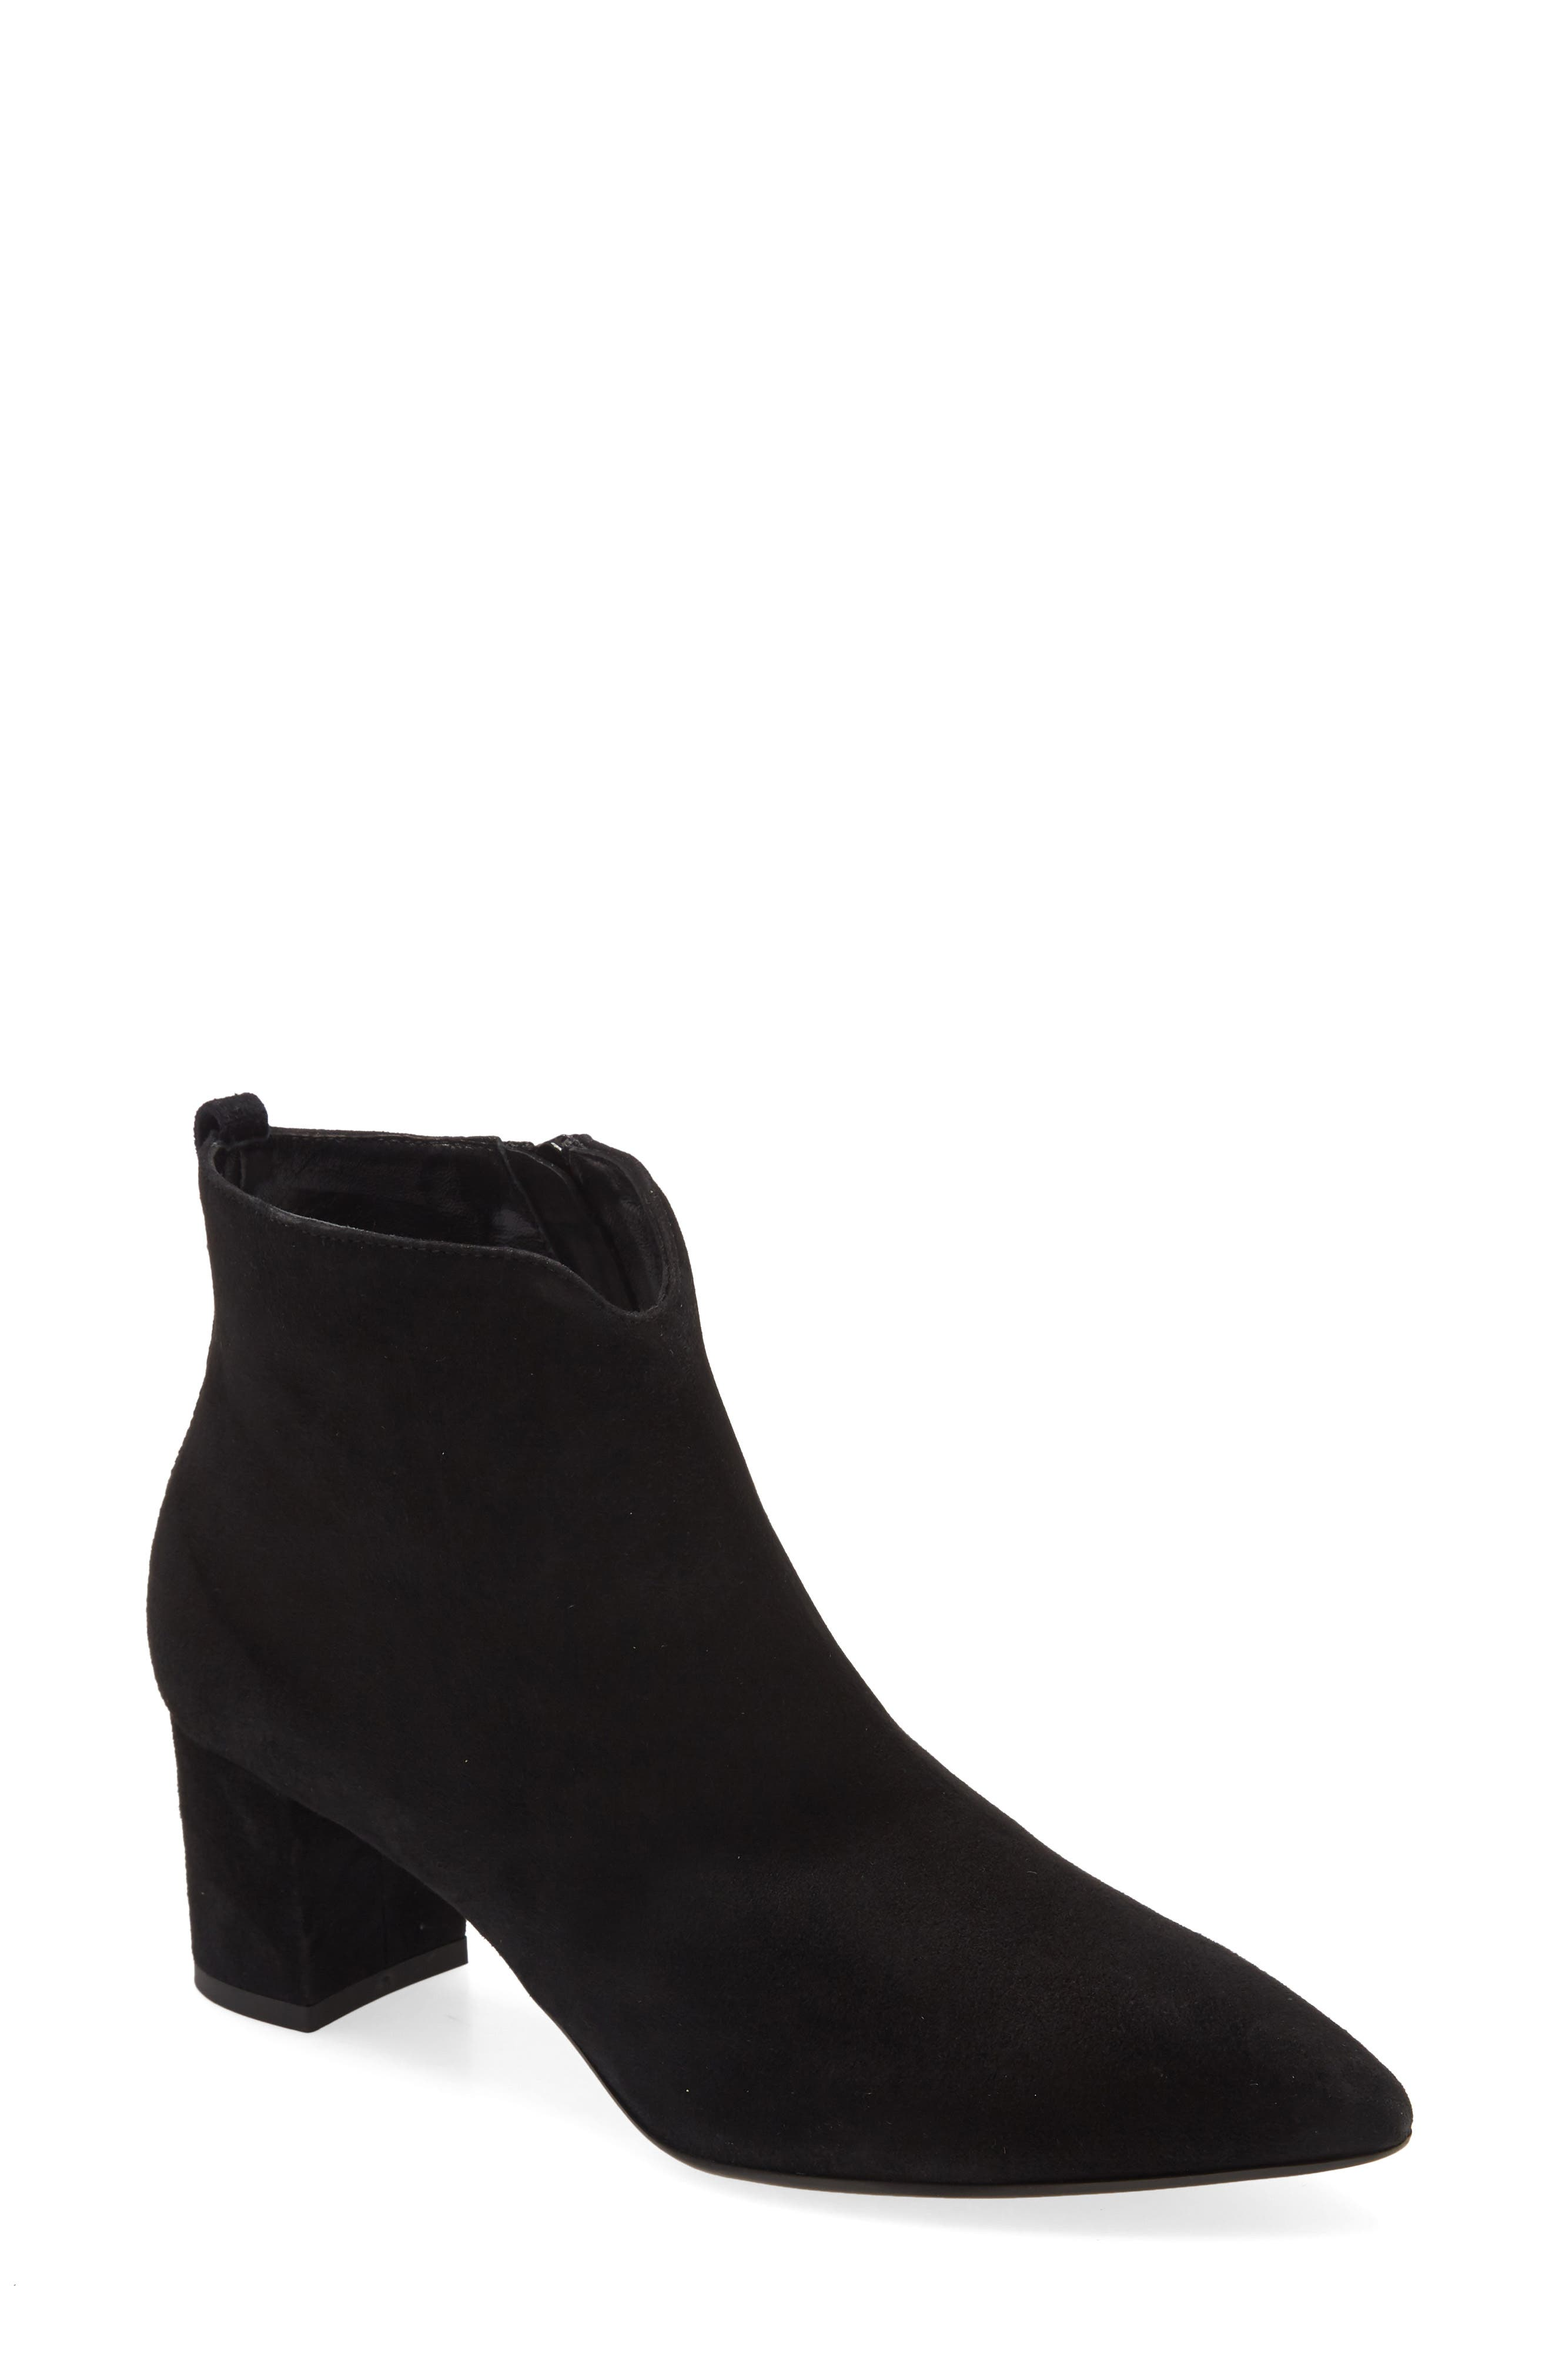 An Italian-made suede bootie with simple sophistication has a sculpted topline to flatter the ankle and a pointy toe balanced by a covered block heel. Style Name: Agl Notch Bootie (Women). Style Number: 6041814. Available in stores.